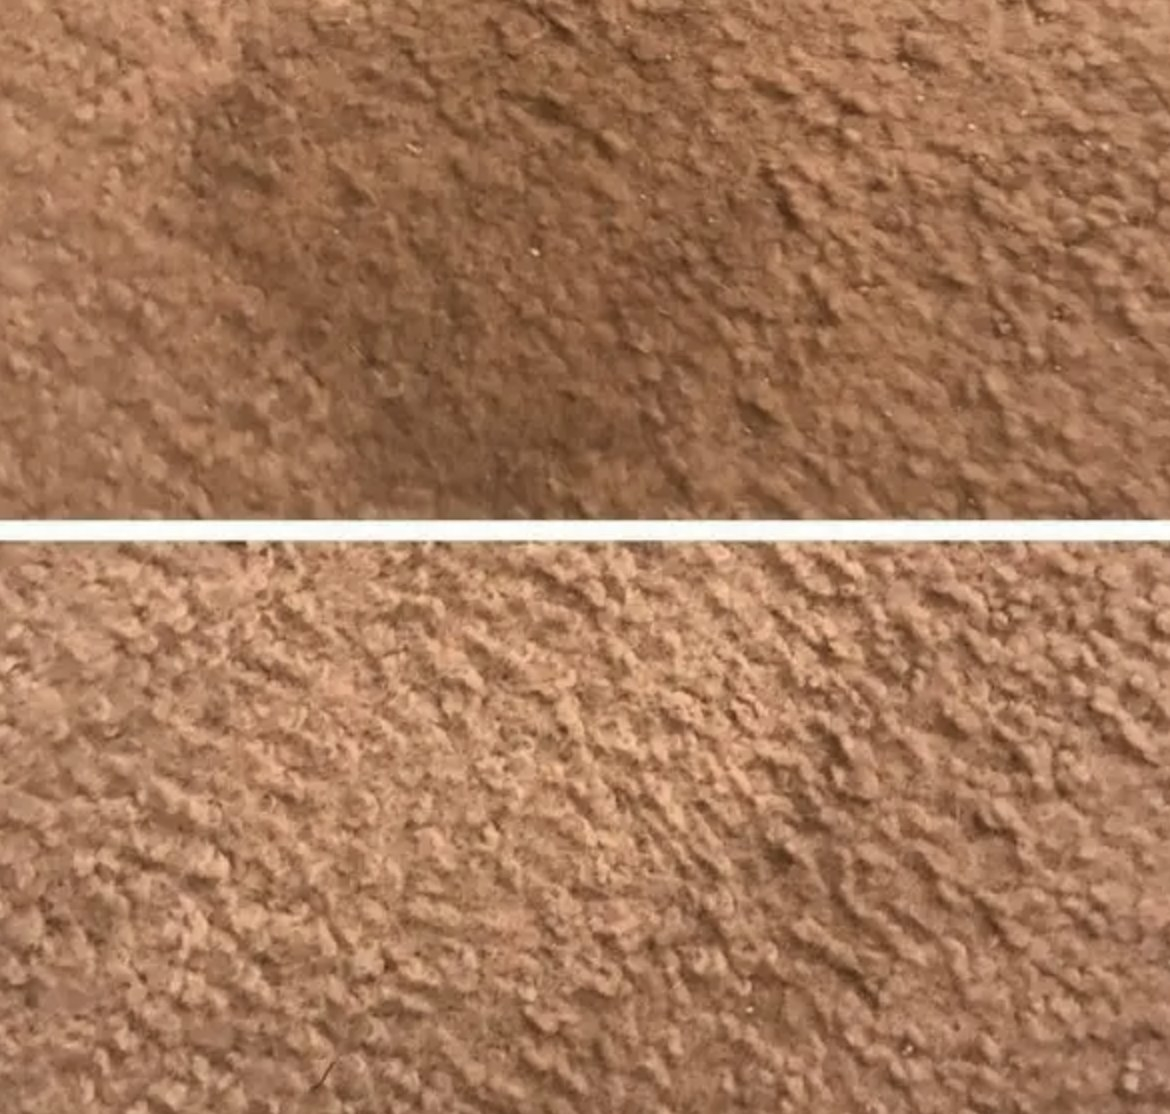 A before and after of a carpet stain